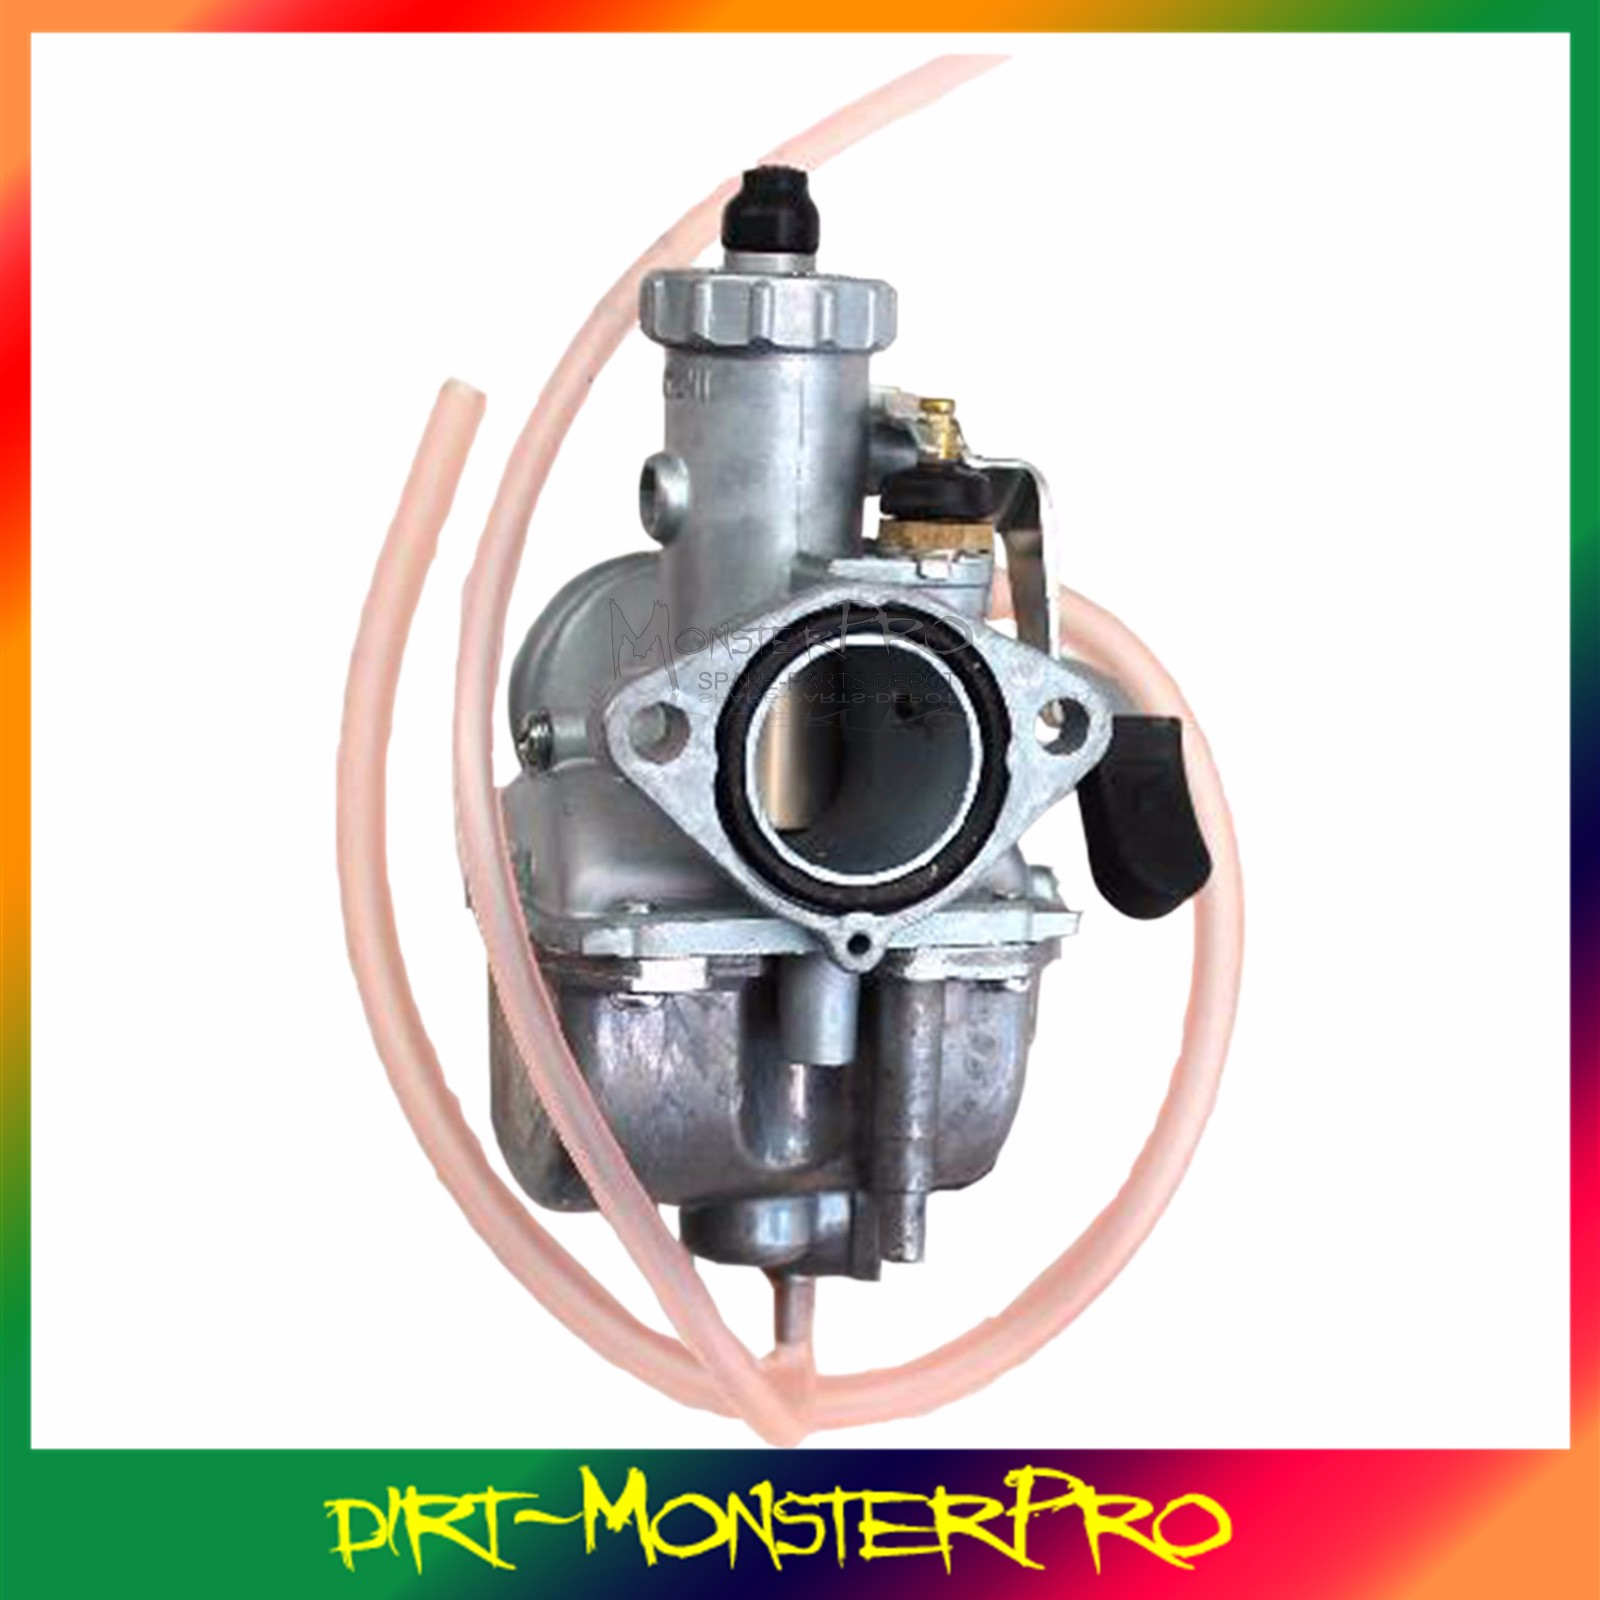 full wiring harness carby carburetor air filter dirt pit bikes product description